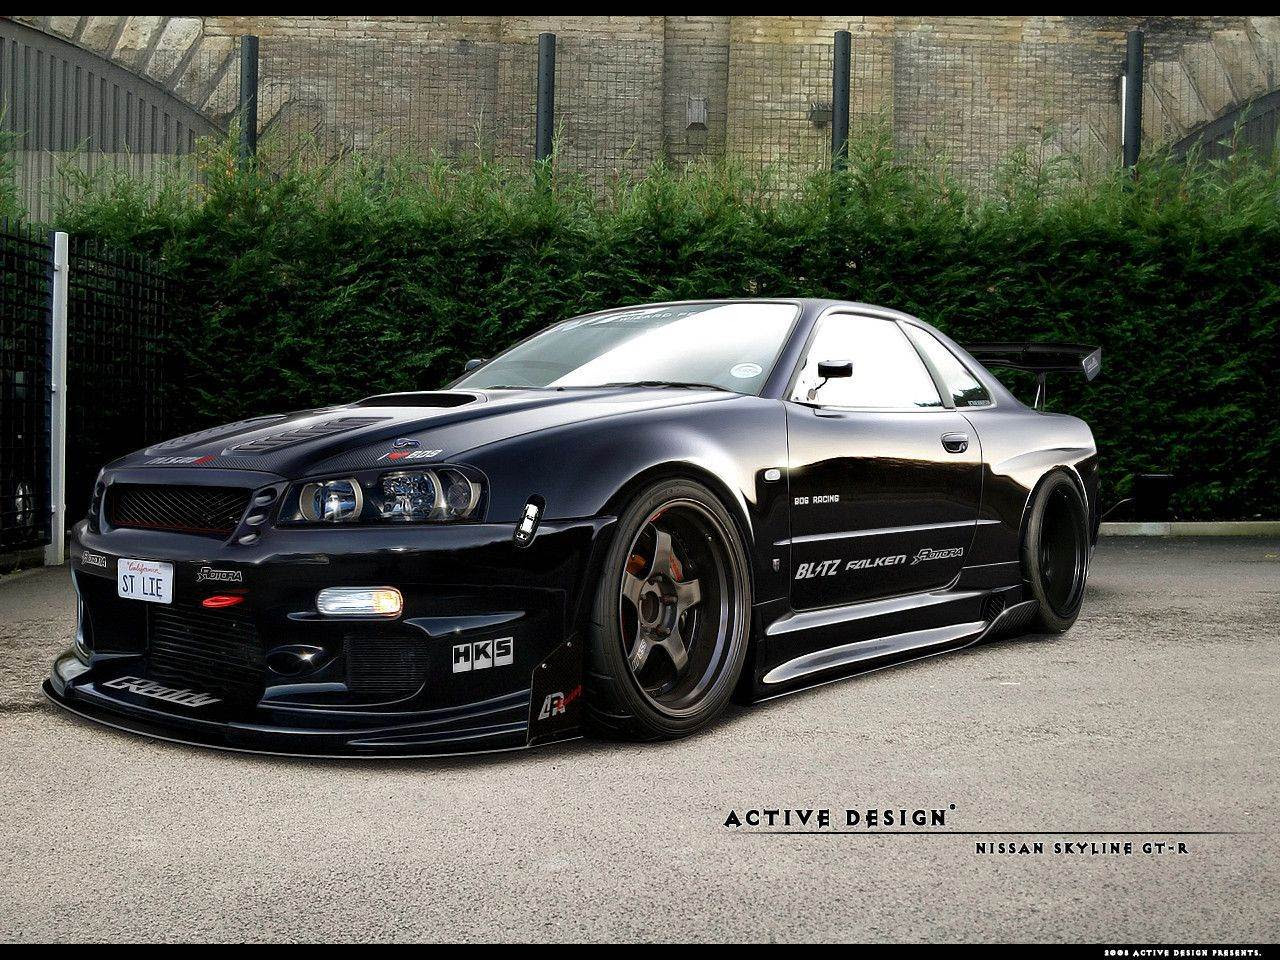 Nissan Skyline Gtr R34 Wallpapers Wallpaper Adorable Wallpapers